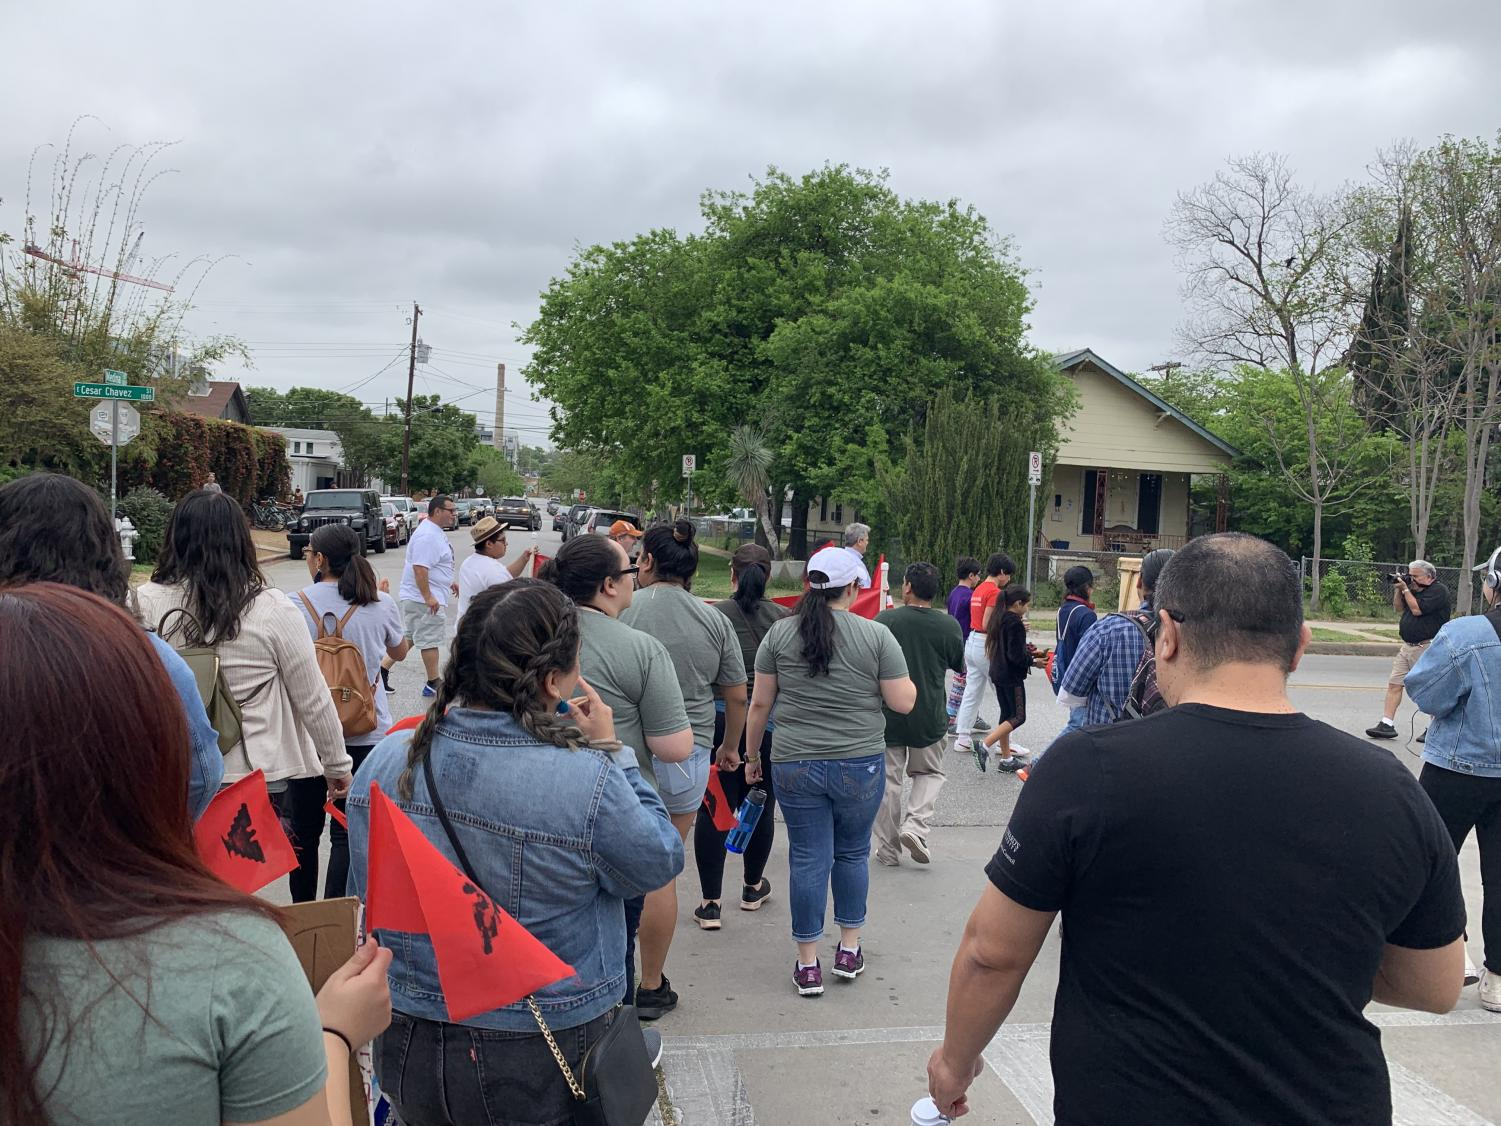 CAMP students participated in events such as the Cesar Chaves march in support of National Farmworker Awareness Week. The students are part of one of the longest running programs of its kind